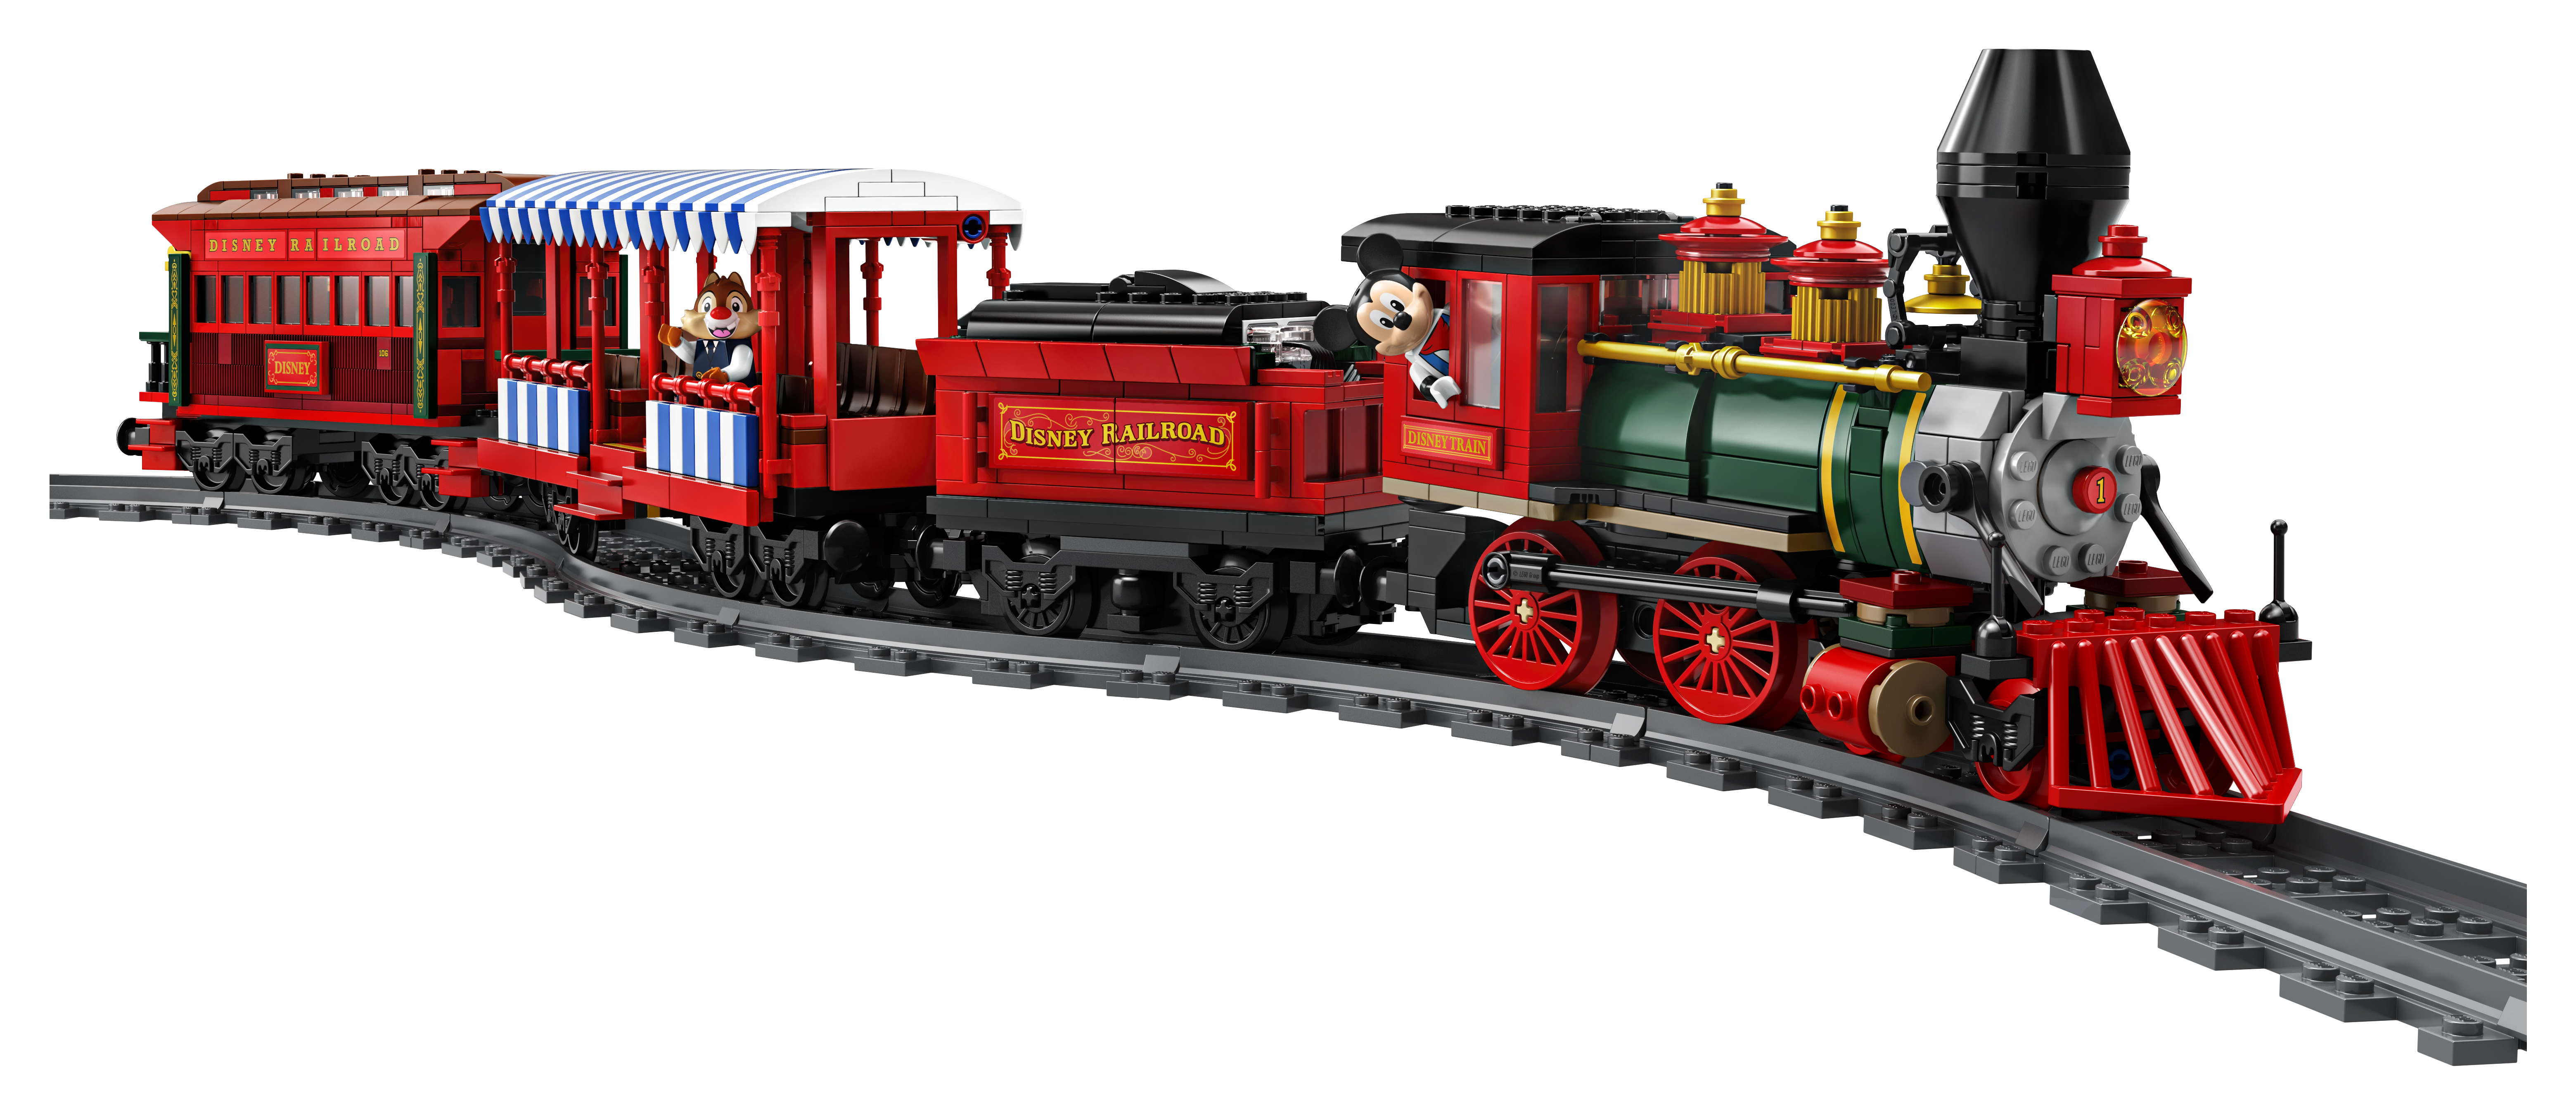 Ride the rails with this new Disneyland Lego train set